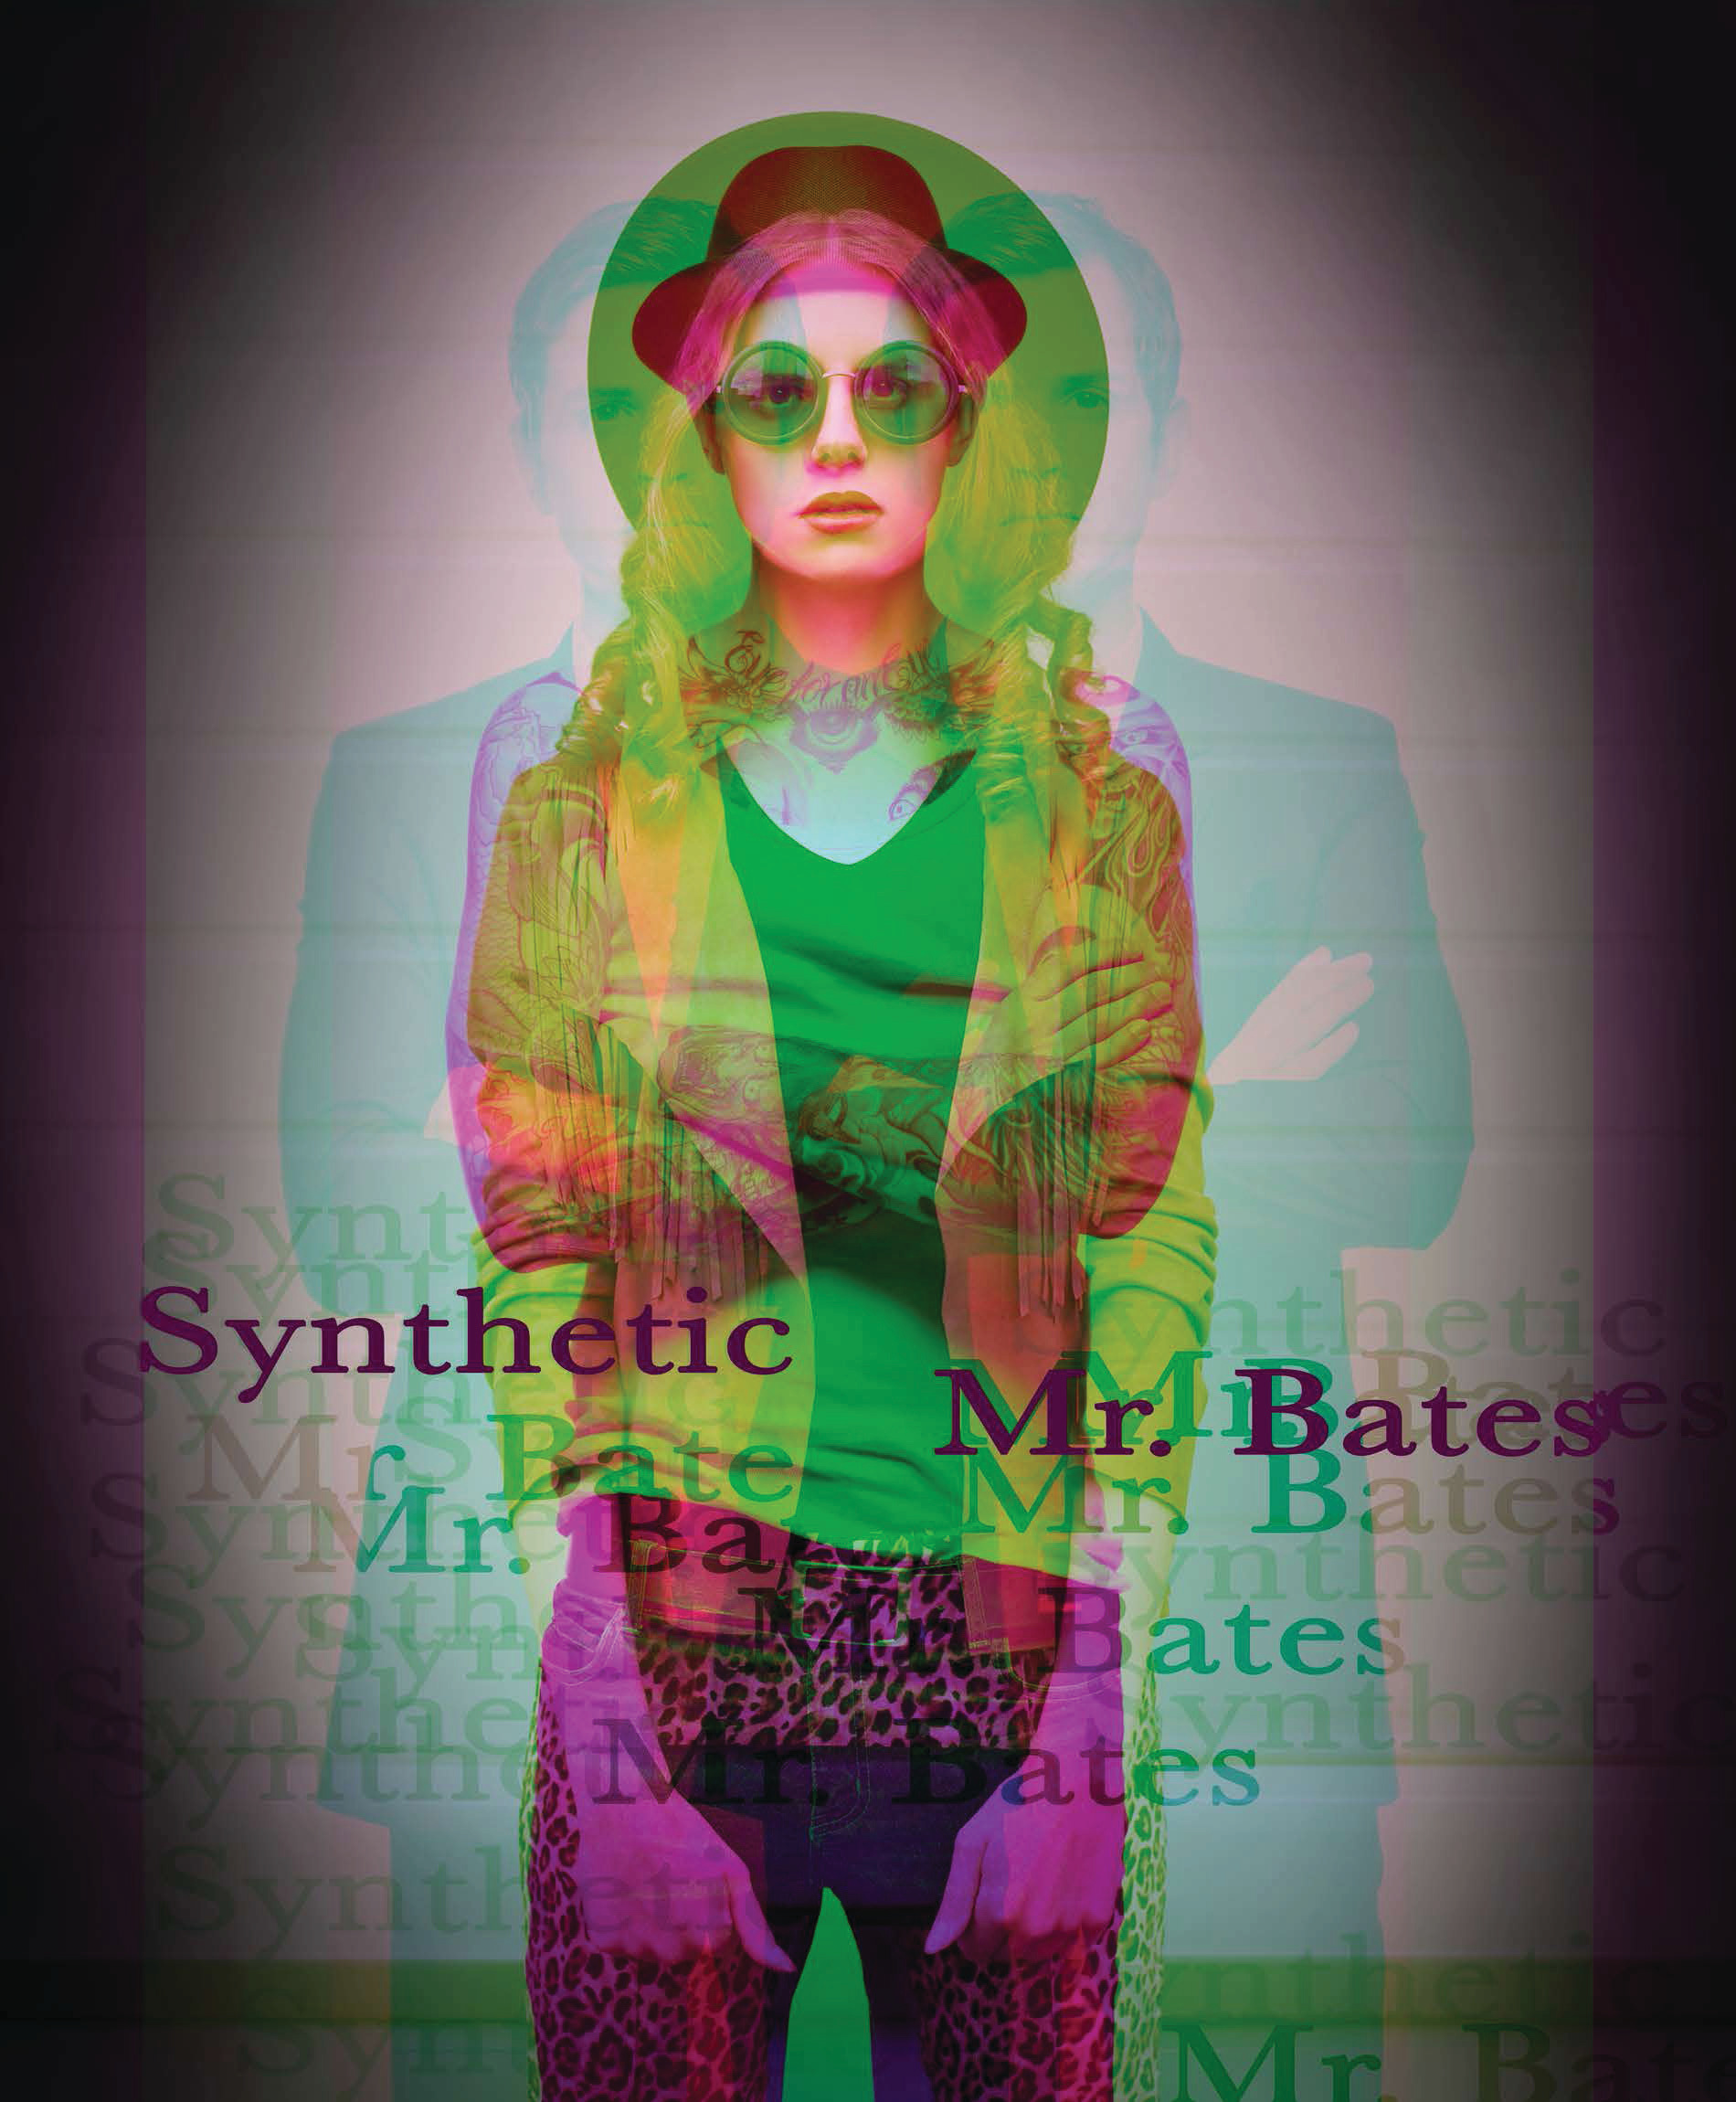 Synthetic Mr. Bates 2